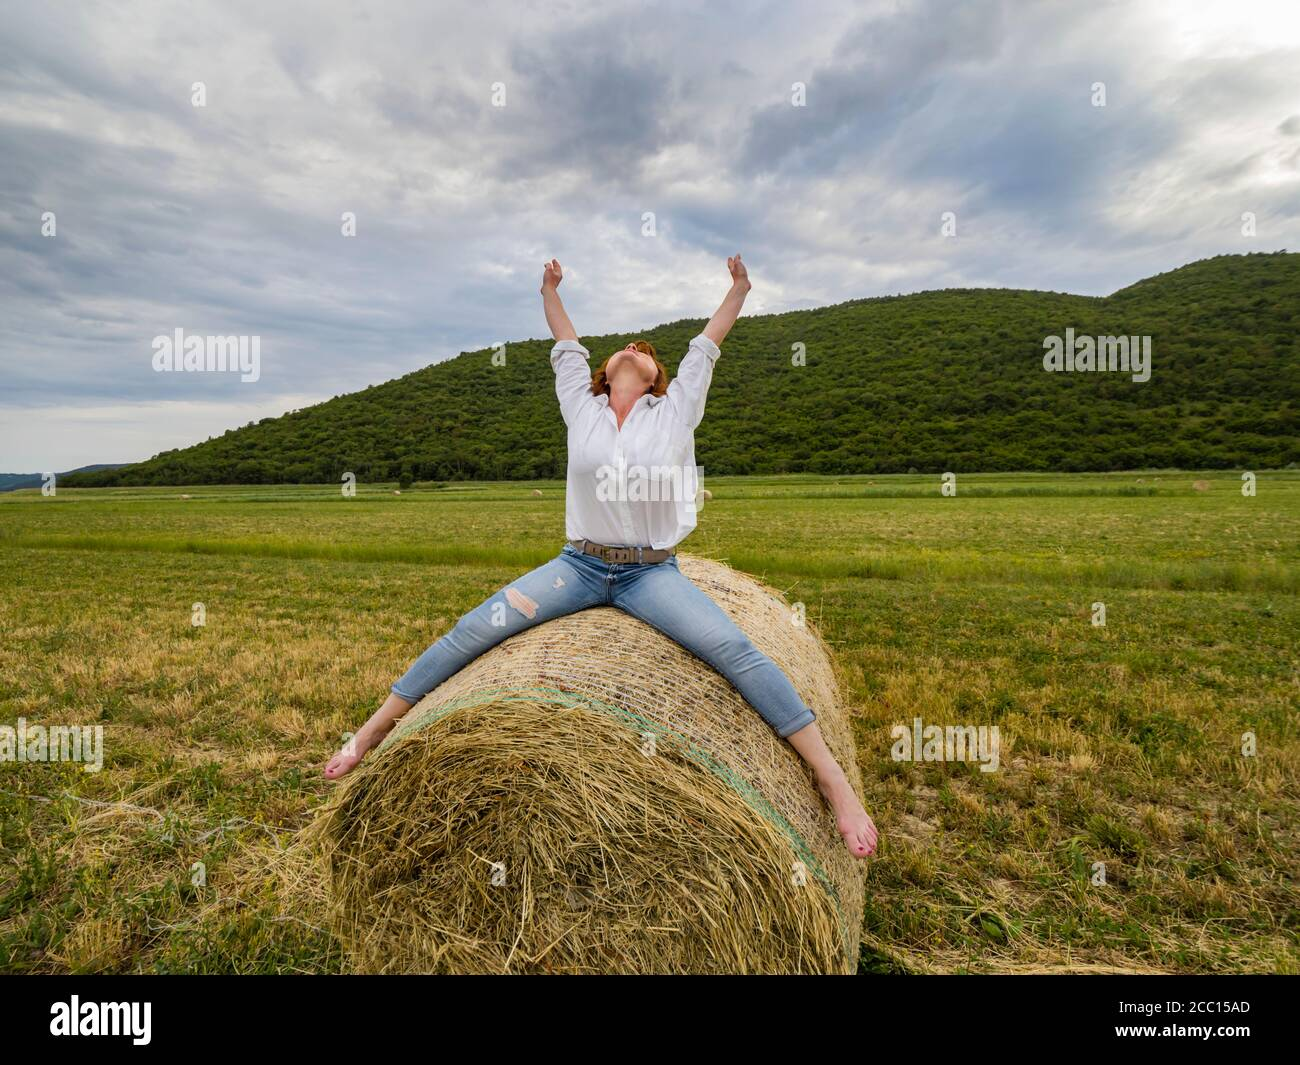 Redhaired woman riding hay haystack acting free person Stock Photo